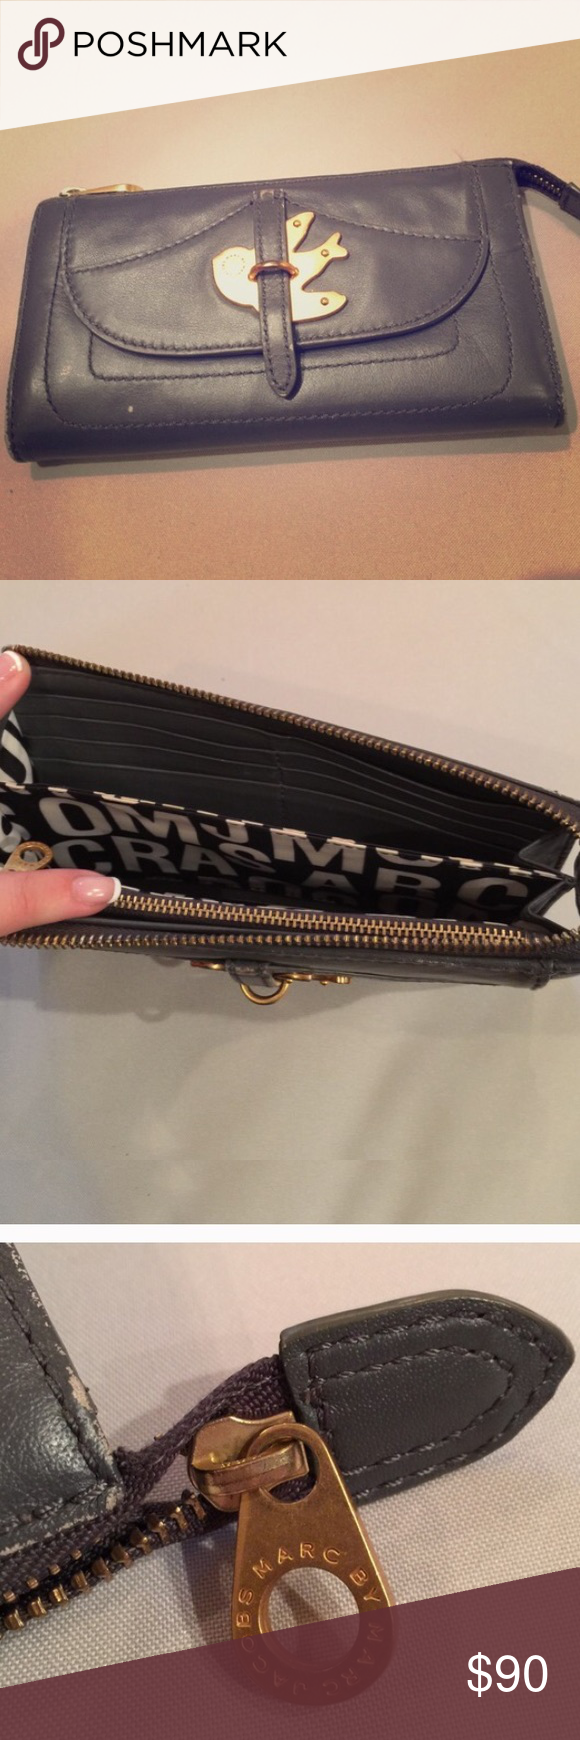 Marc By Jacobs Petal To The Metal Wallet Bag Jacob Authentic Some Wear And Tear From Usage But